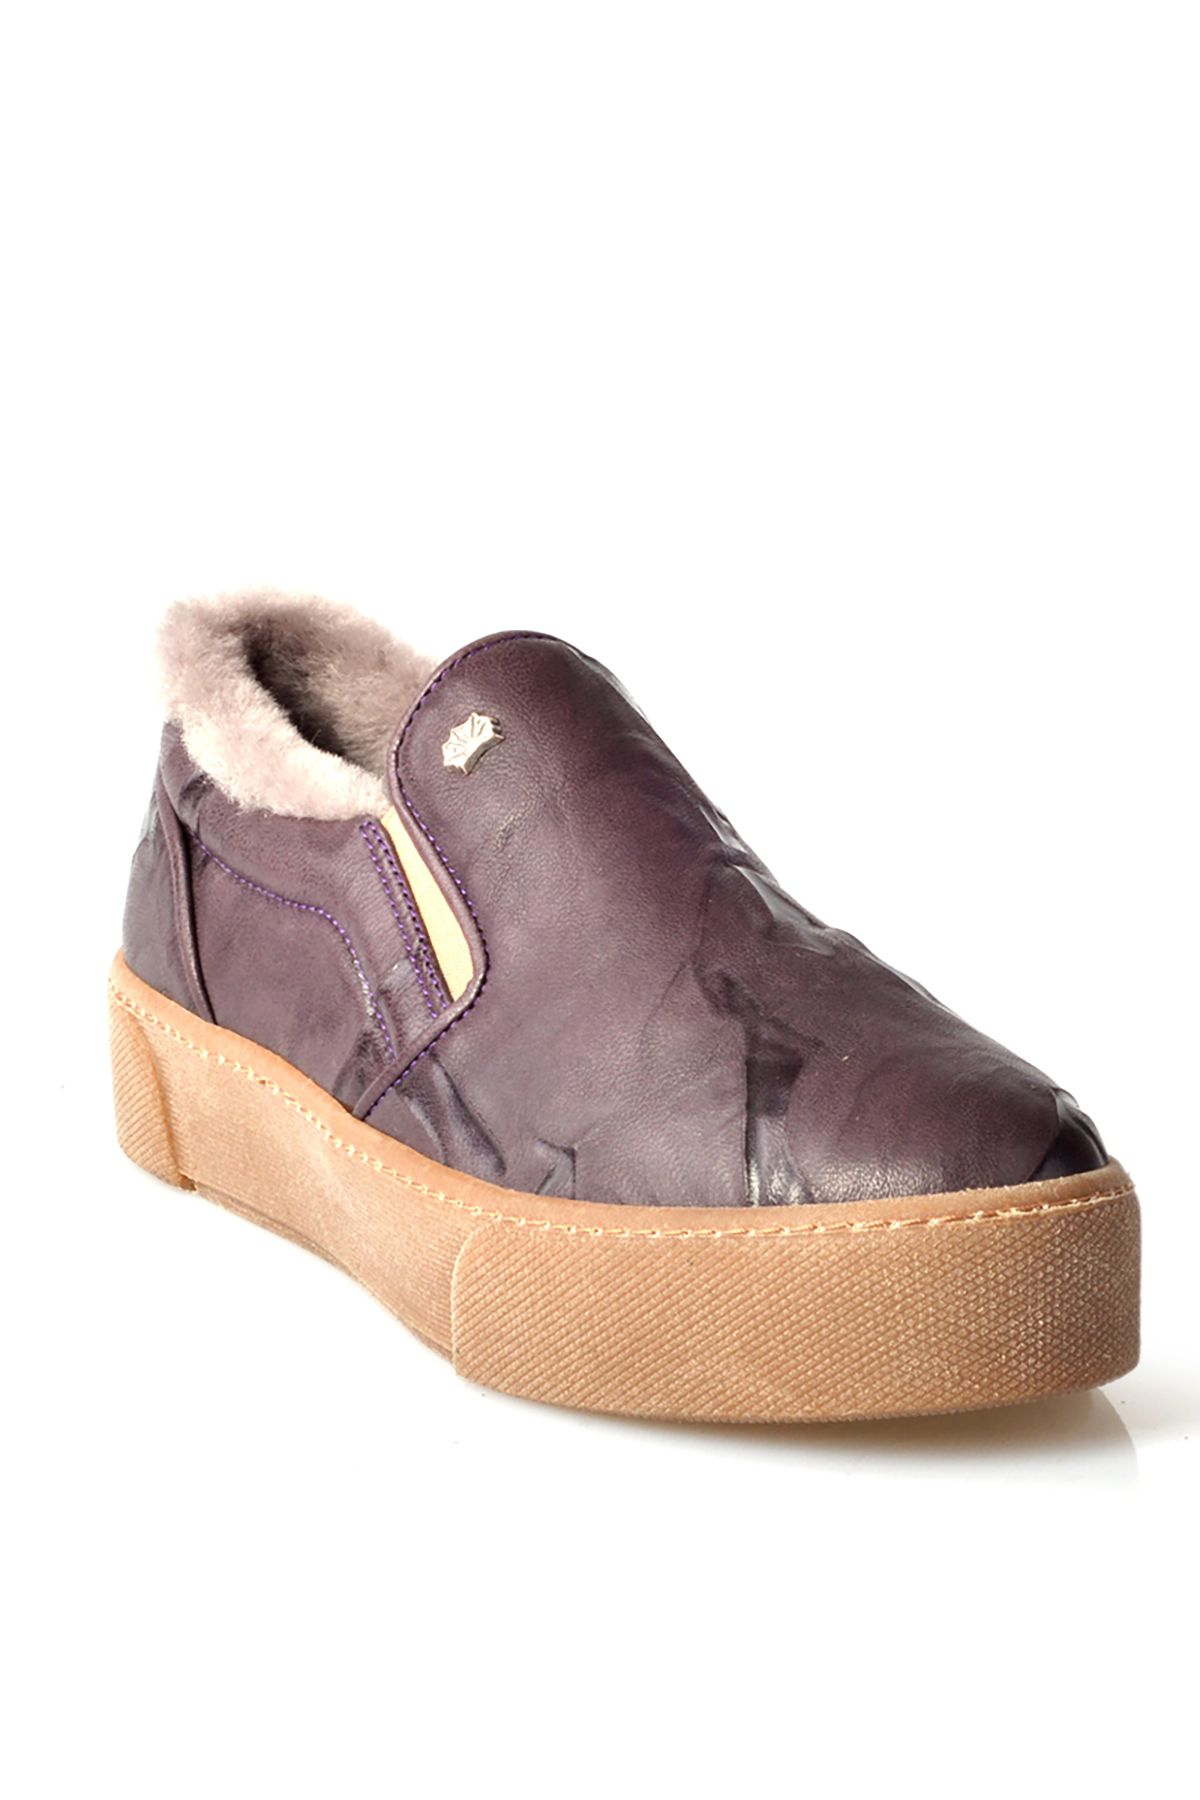 Pegia Aged Women Sneakers From Genuine Leather And Fur Purple